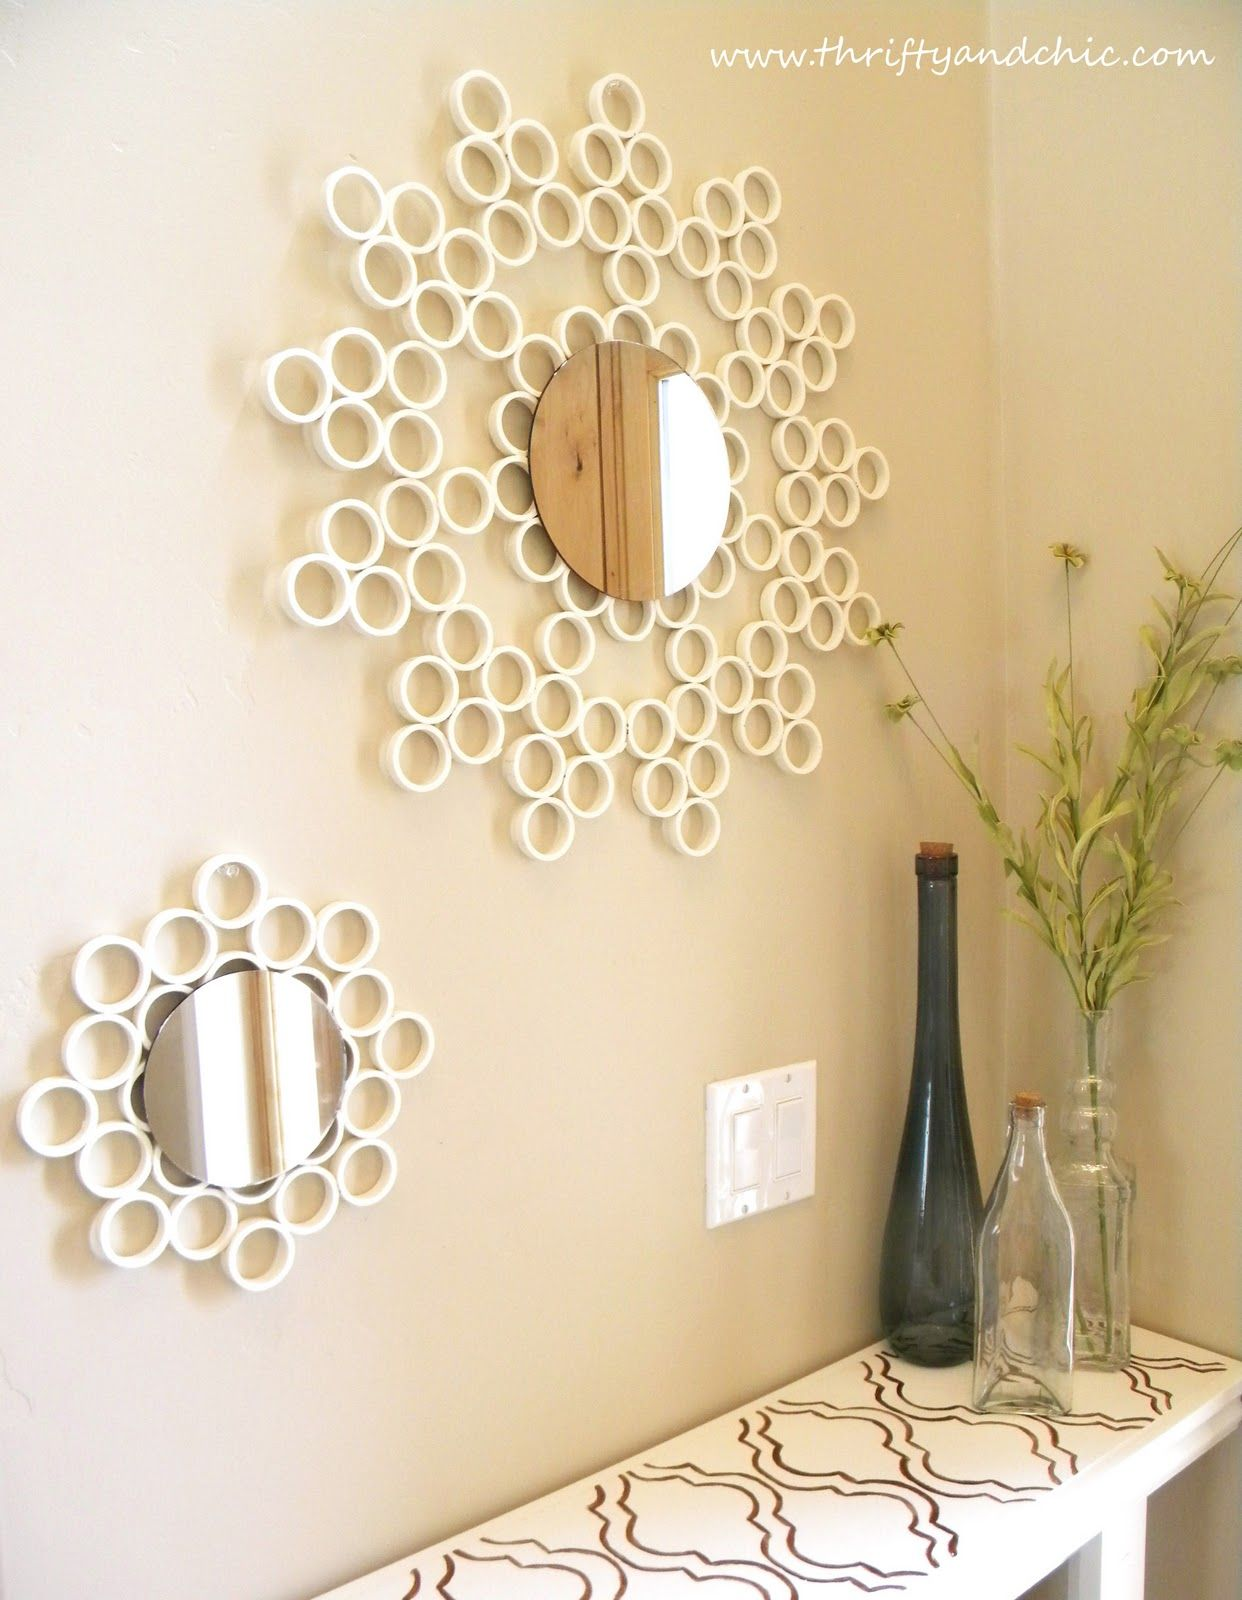 PVC Pipe Mirror | Pvc pipe, Sunburst mirror and Pipes